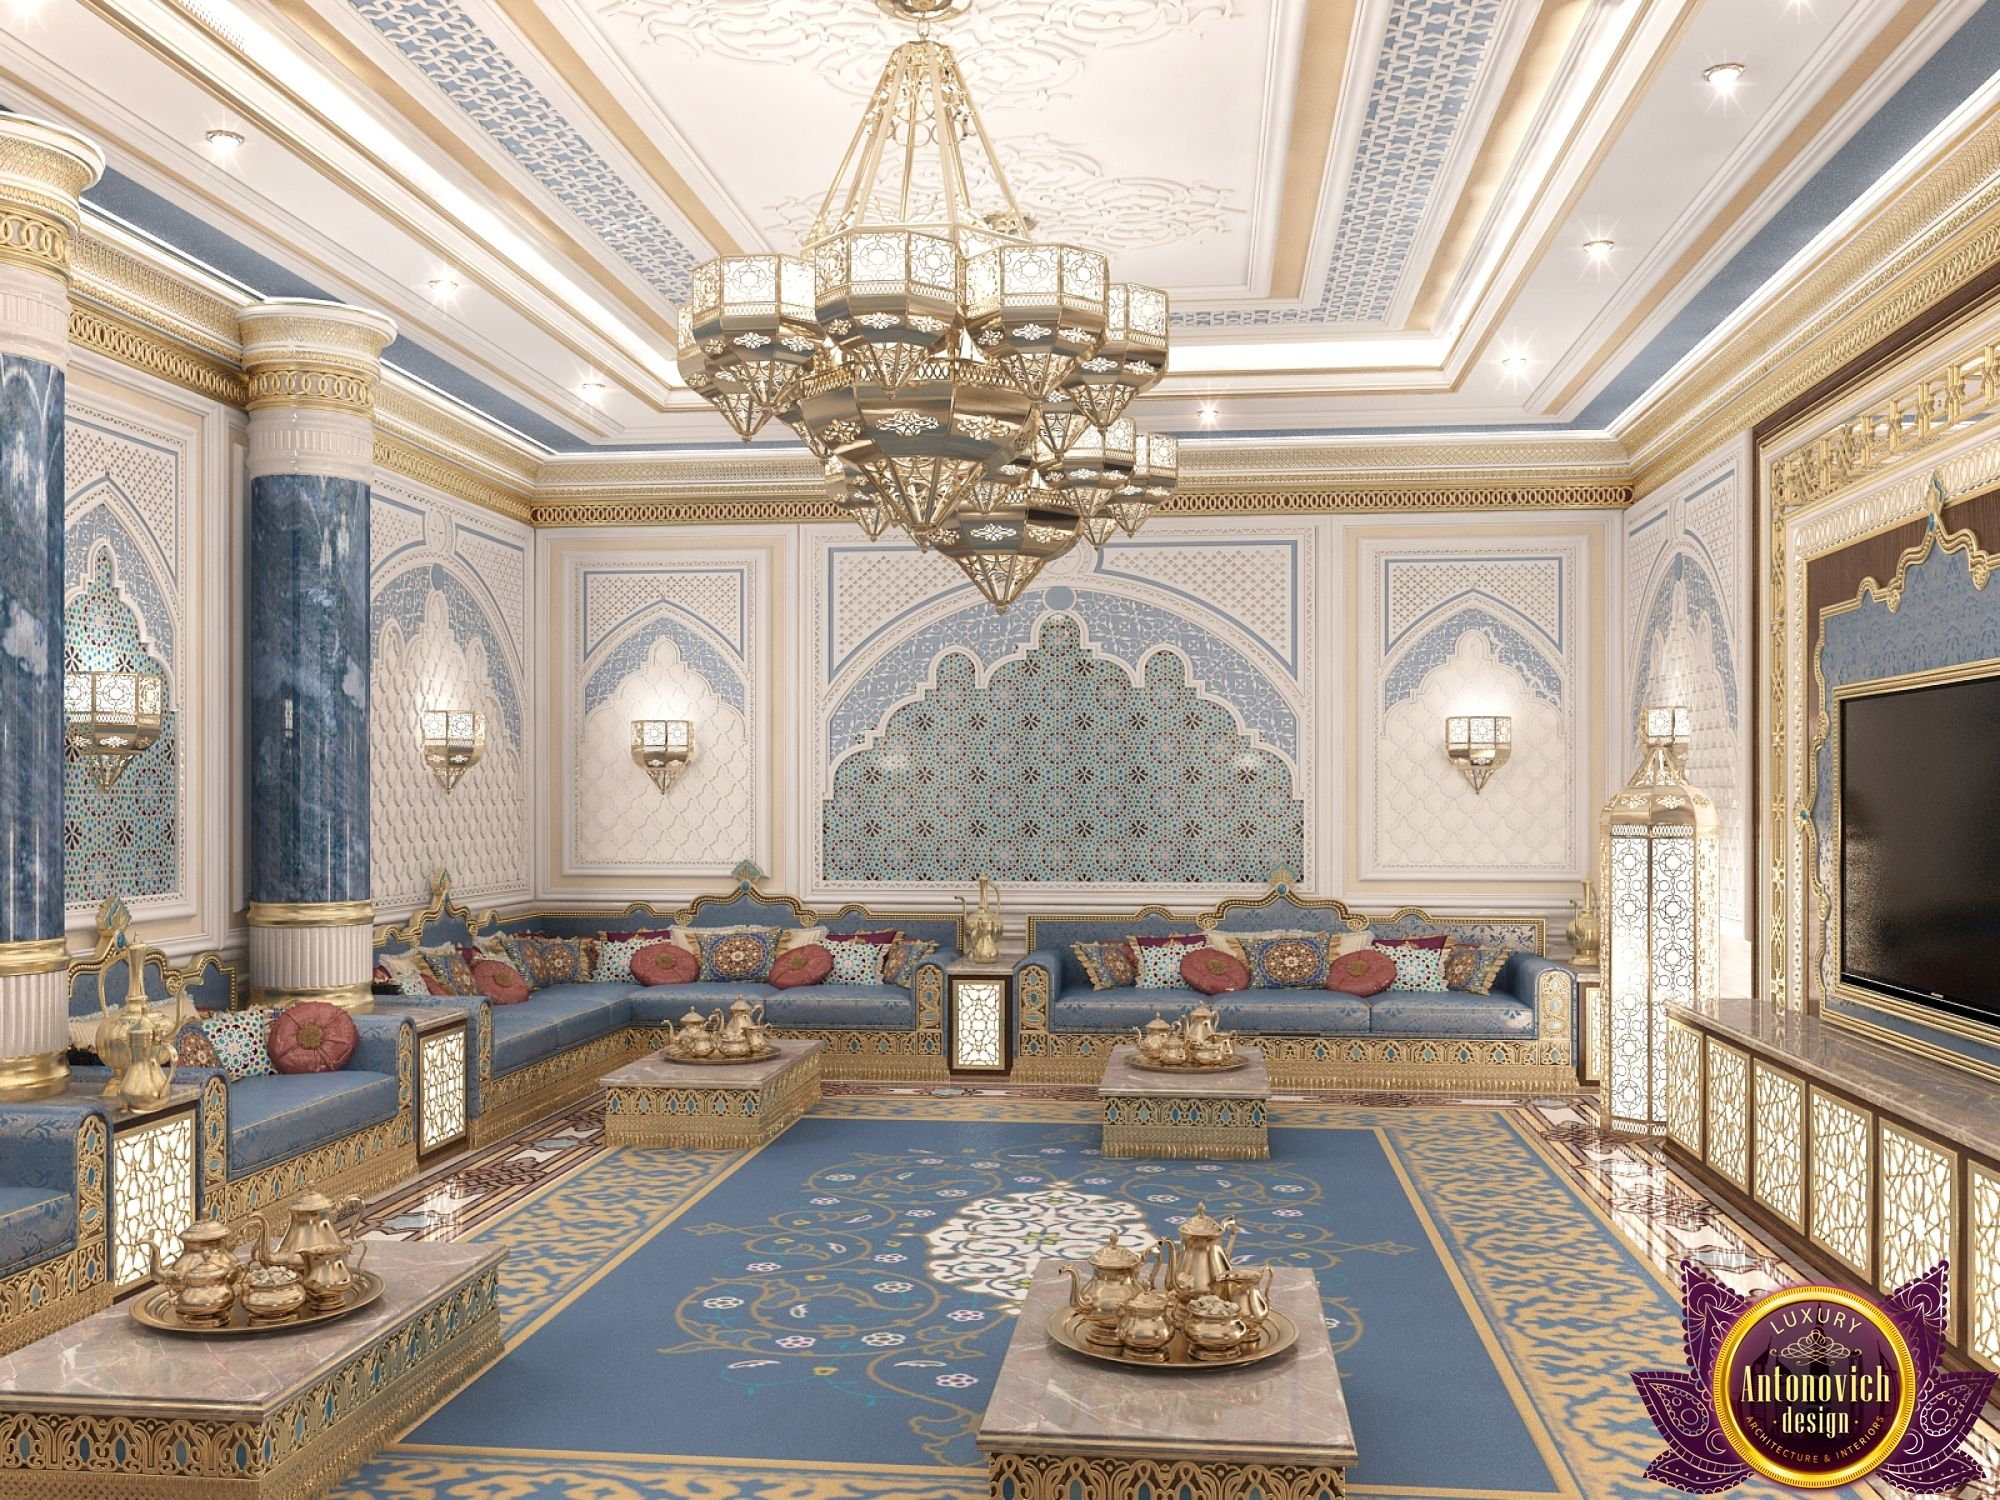 You can have a look at our lavish women majlis designs in the gallery majlis download